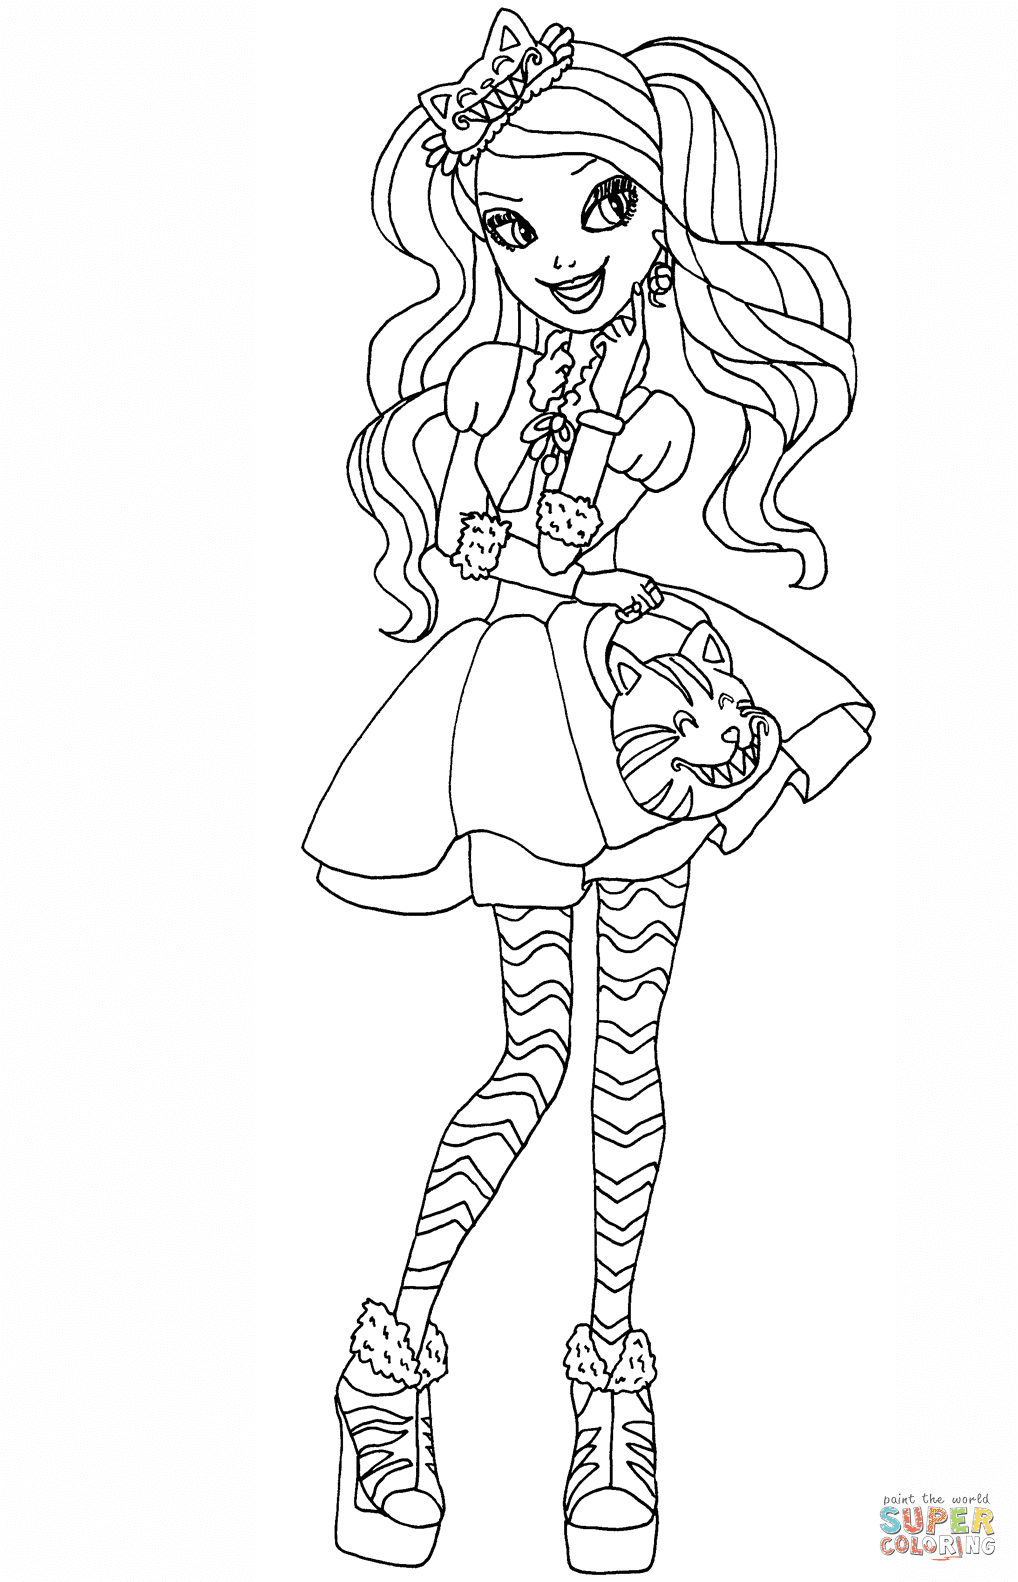 Coloriage Ever After High Kitty Cheshire Coloriages à Imprimer